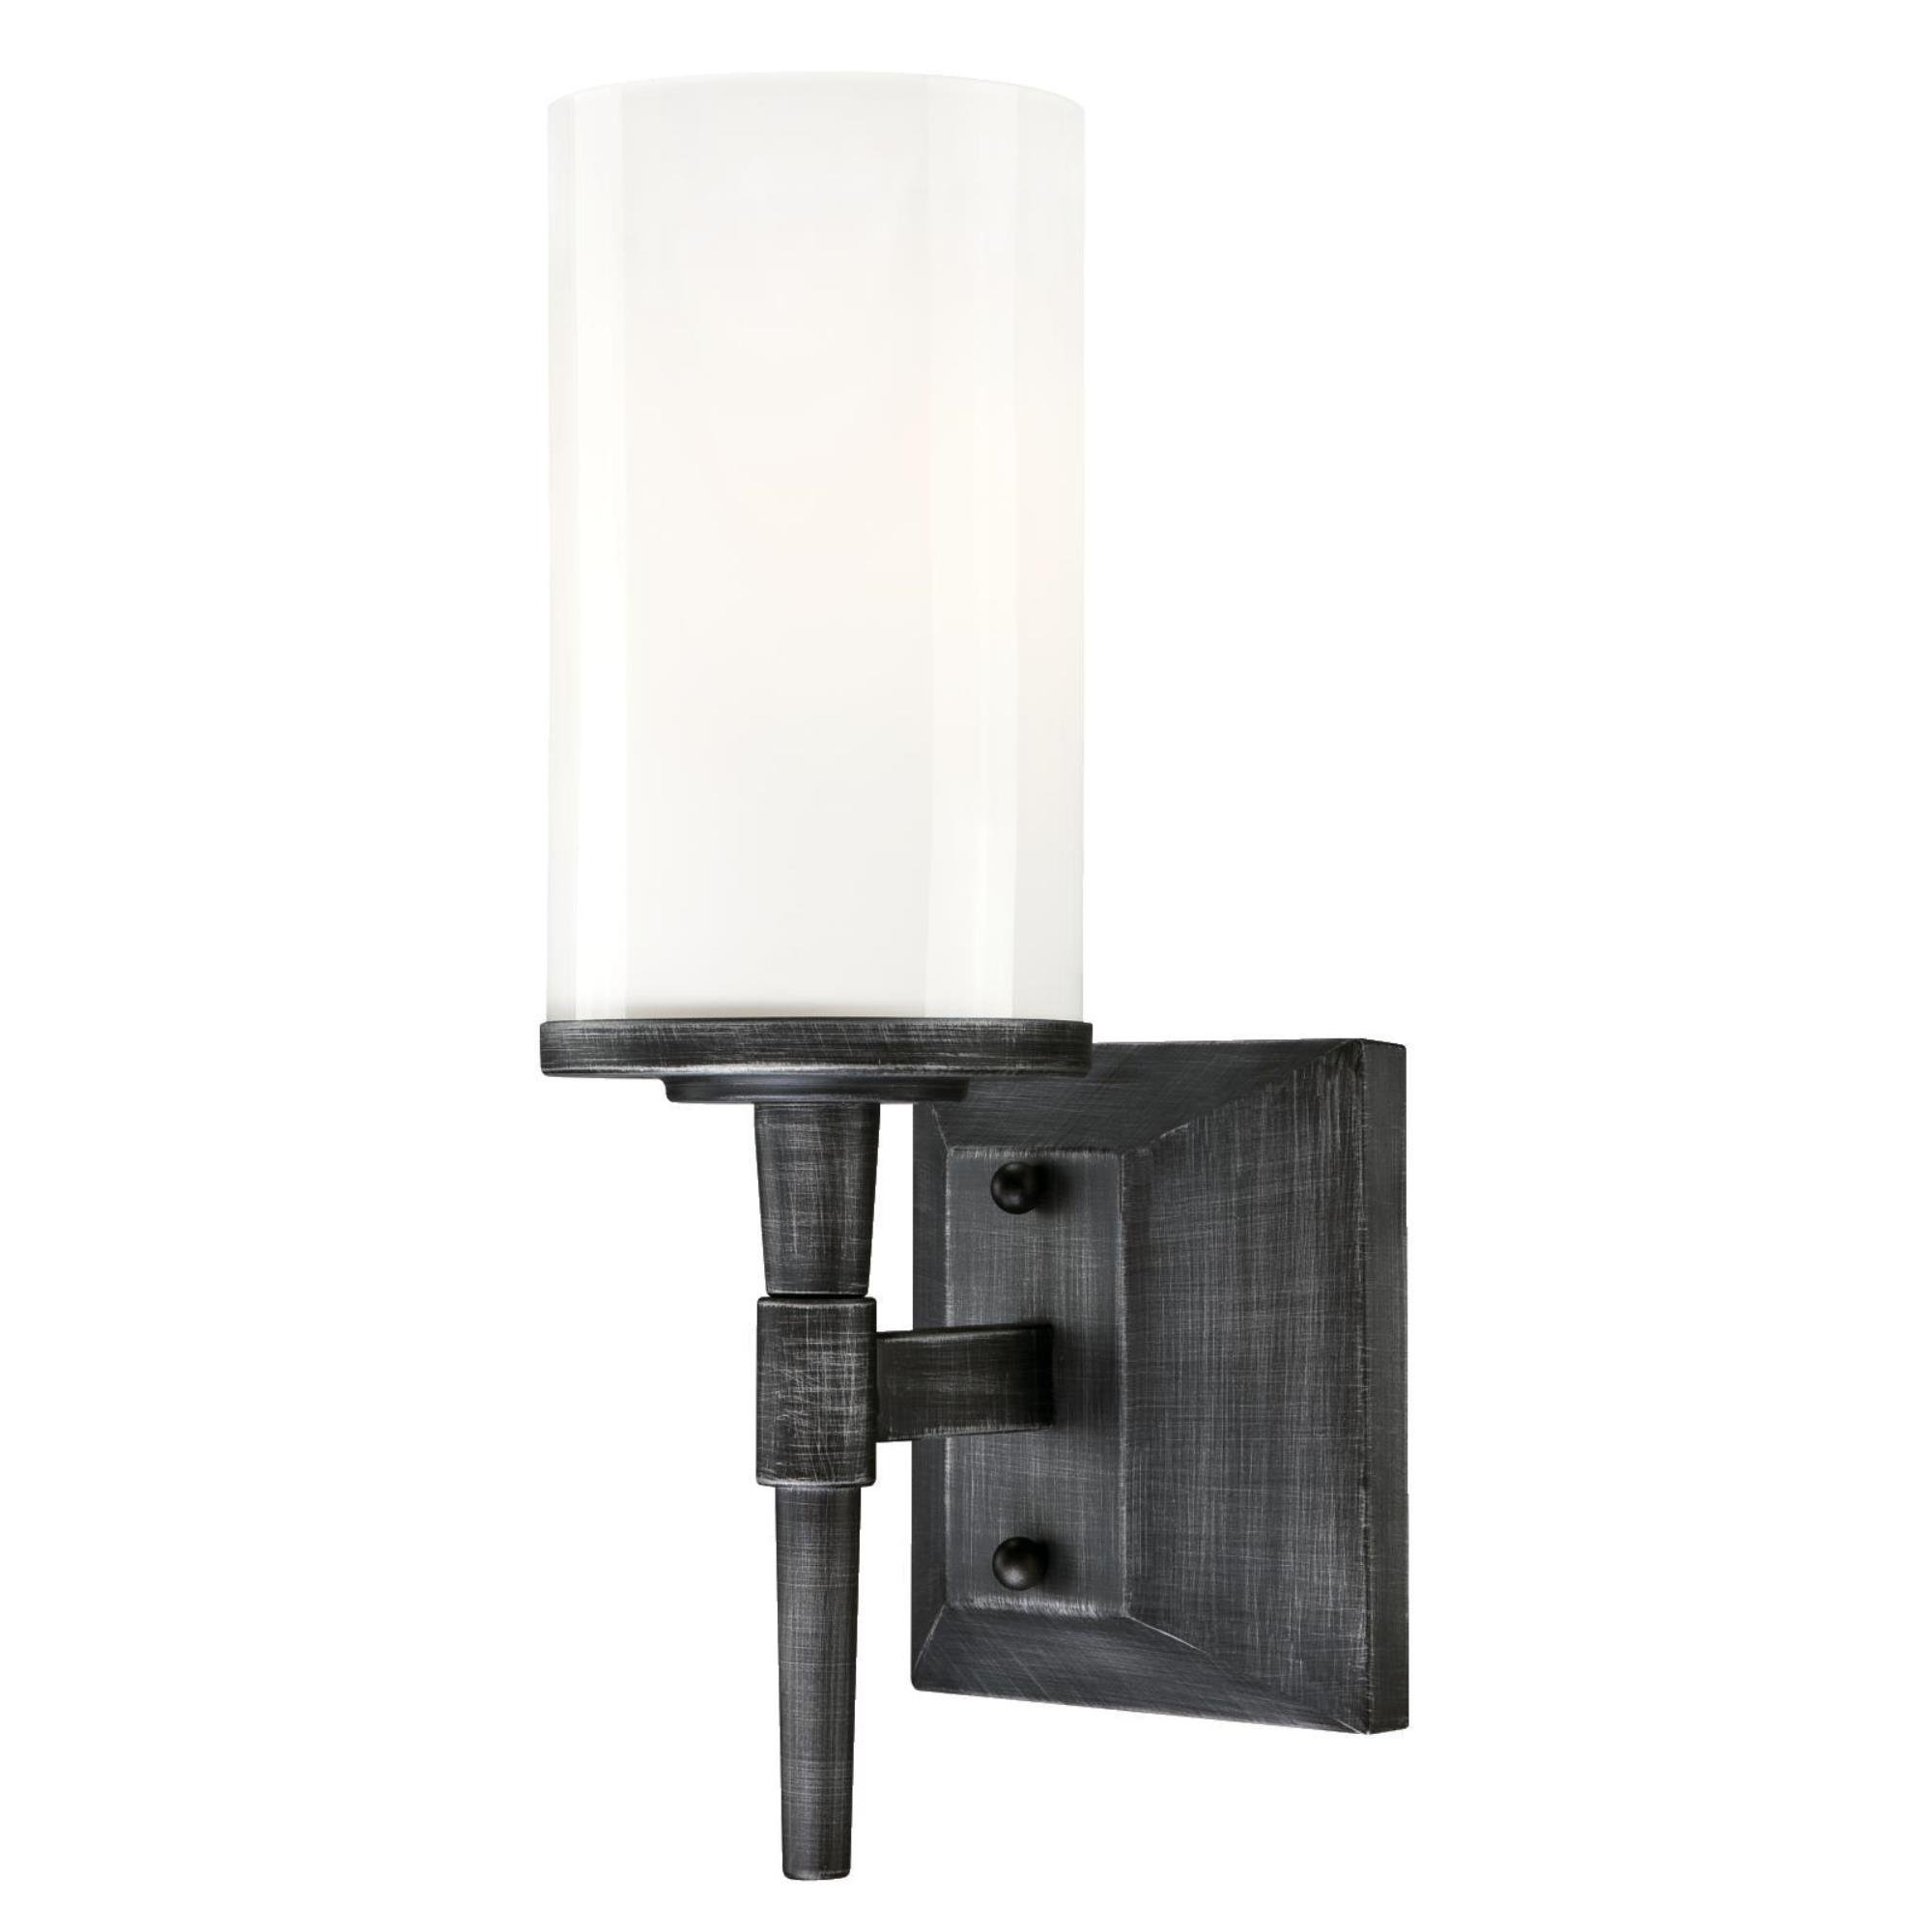 Westinghouse 6325000 Courtfield One-Light Indoor Wall Fixture, Distressed Aluminum Finish with White Opal Glass